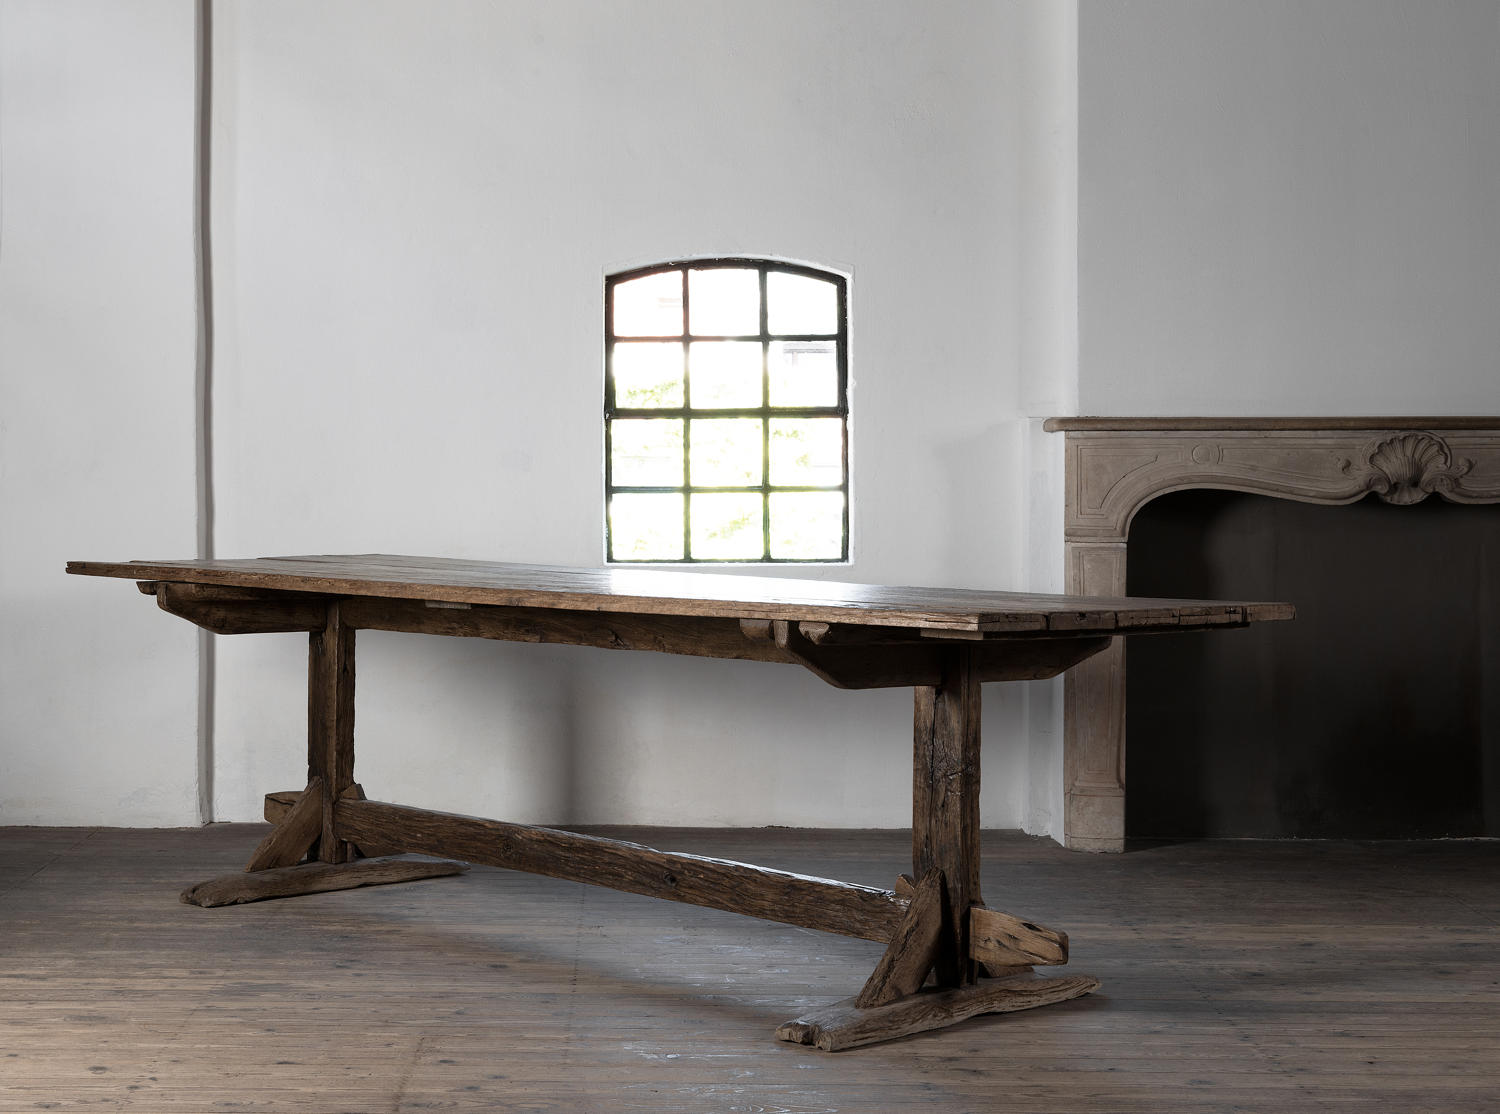 Exceptional Large French Montagnard Trestle Table, 18th Century